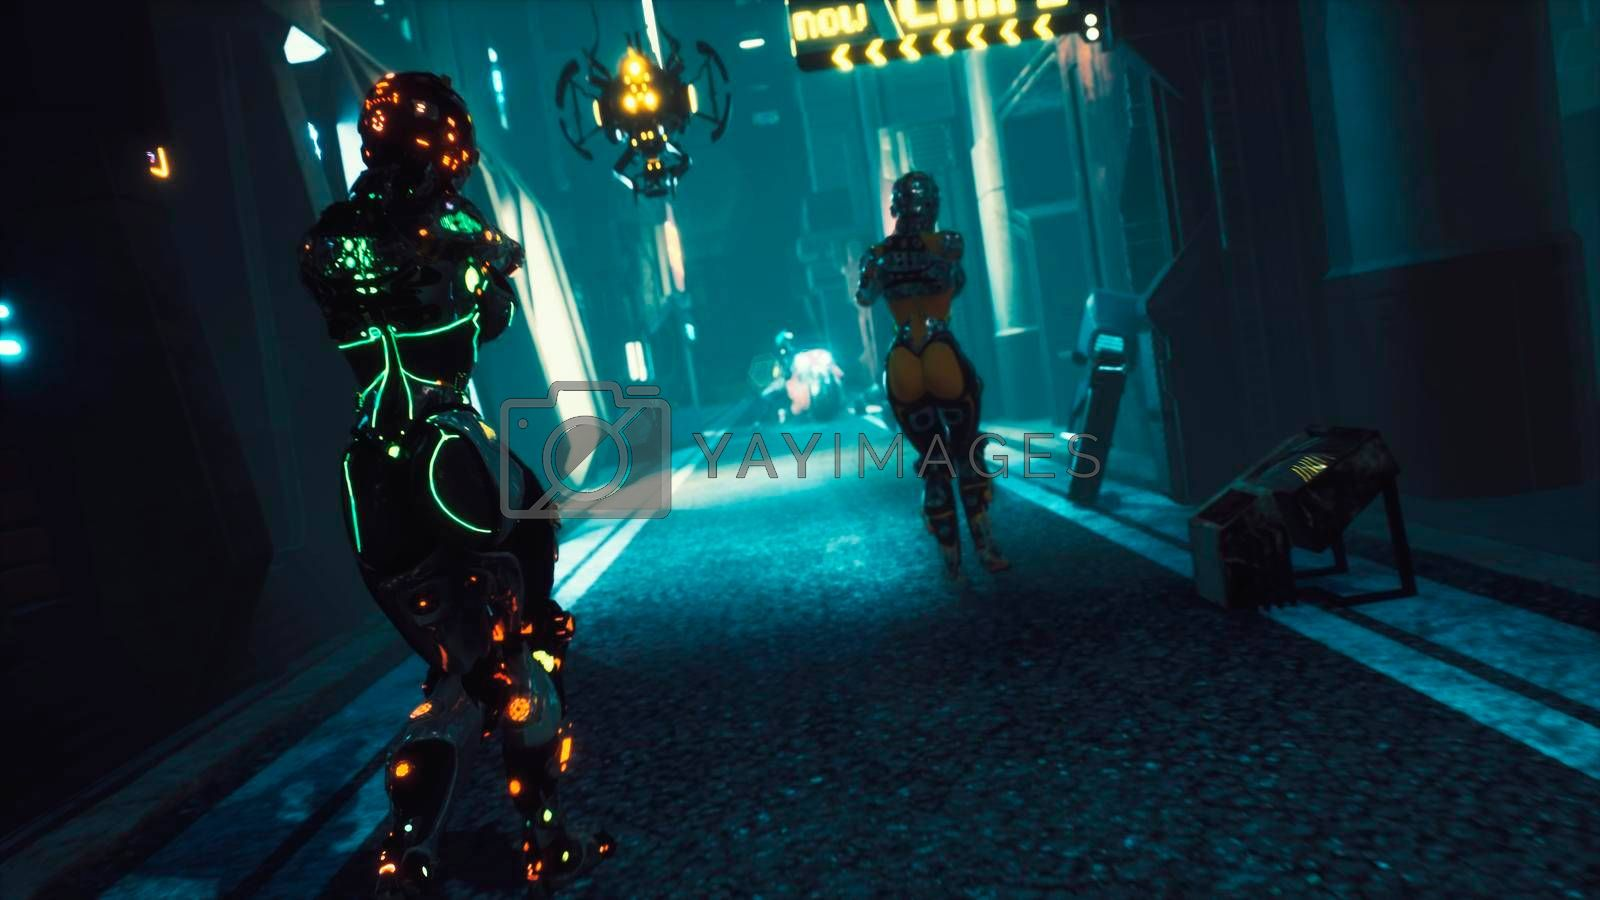 Cyber soldier walks through the dark streets of the cyber city of the future. View of an future fiction city. Post-apocalyptic cyber world concept.